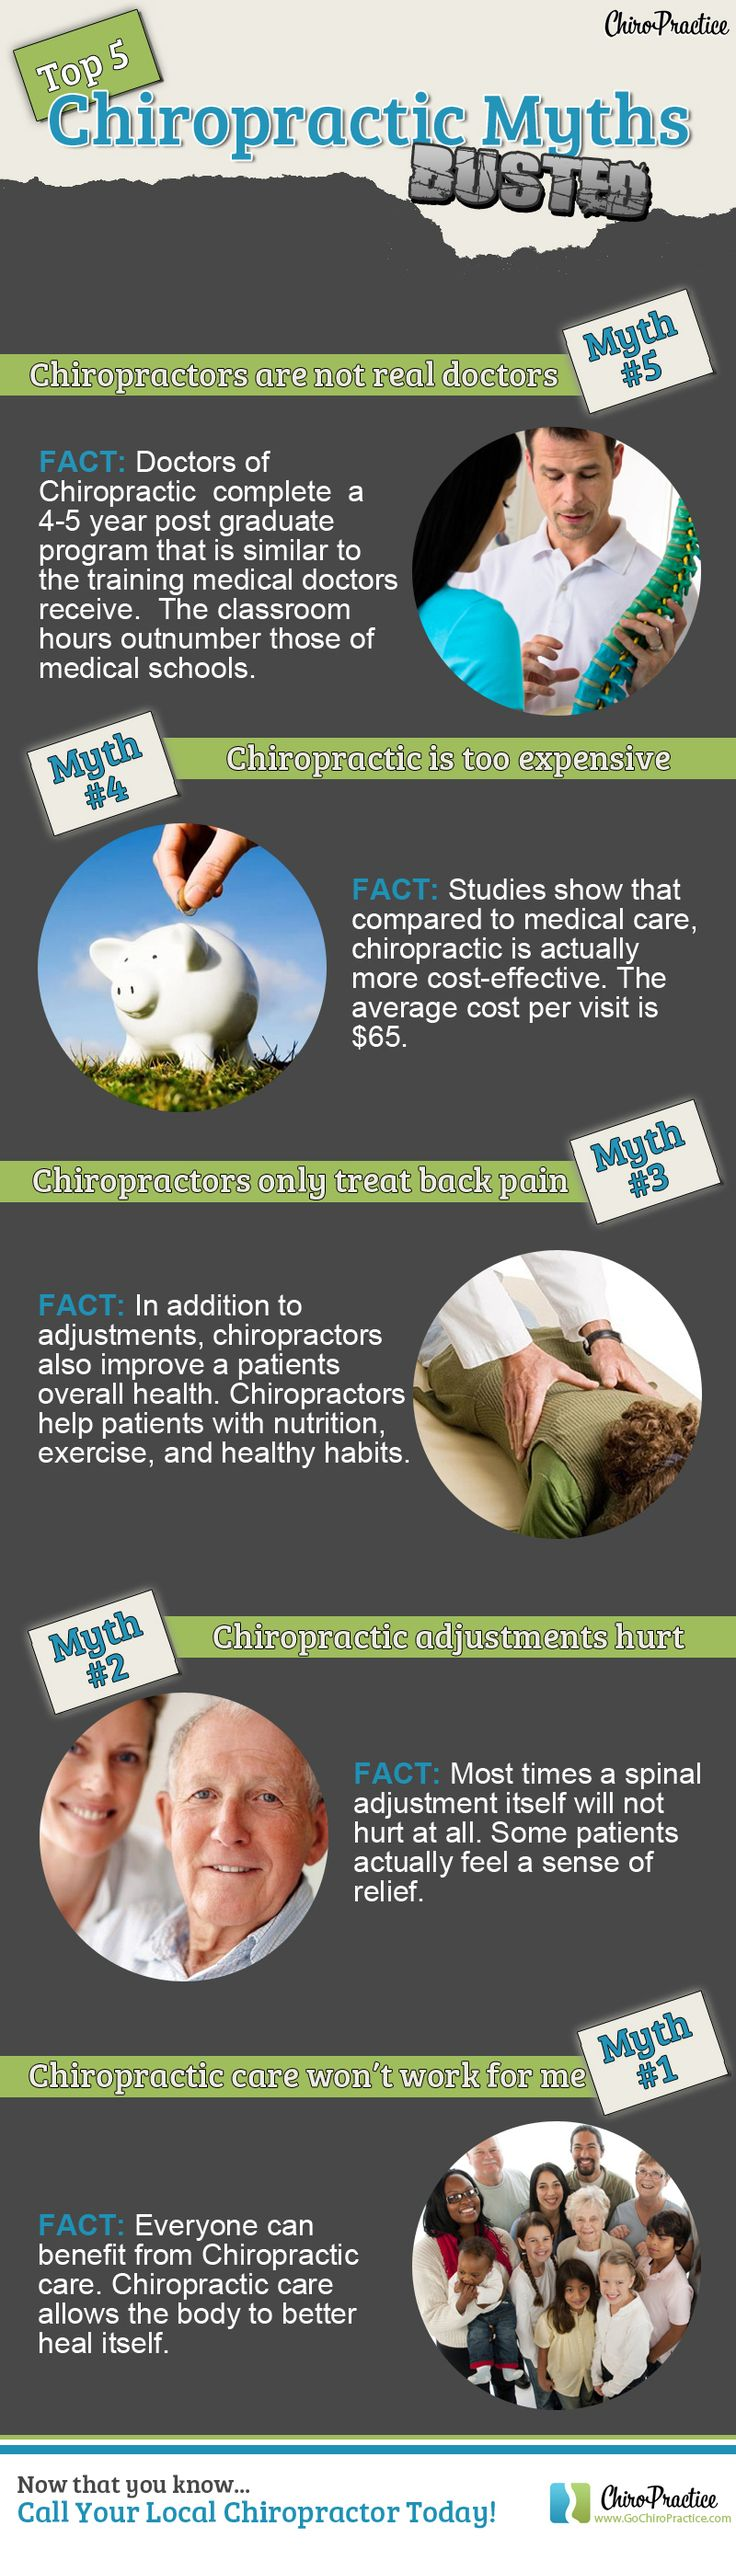 There are a lot of misconceptions about chiropractors floating around on the internet. Many of these misconceptions stem from misunderstandings of what chiropractor do and why they do it. This infographic was created to sort out a few of the rumors. Feel free to post the infographic on your website, blog, or social media pages. Enjoy!